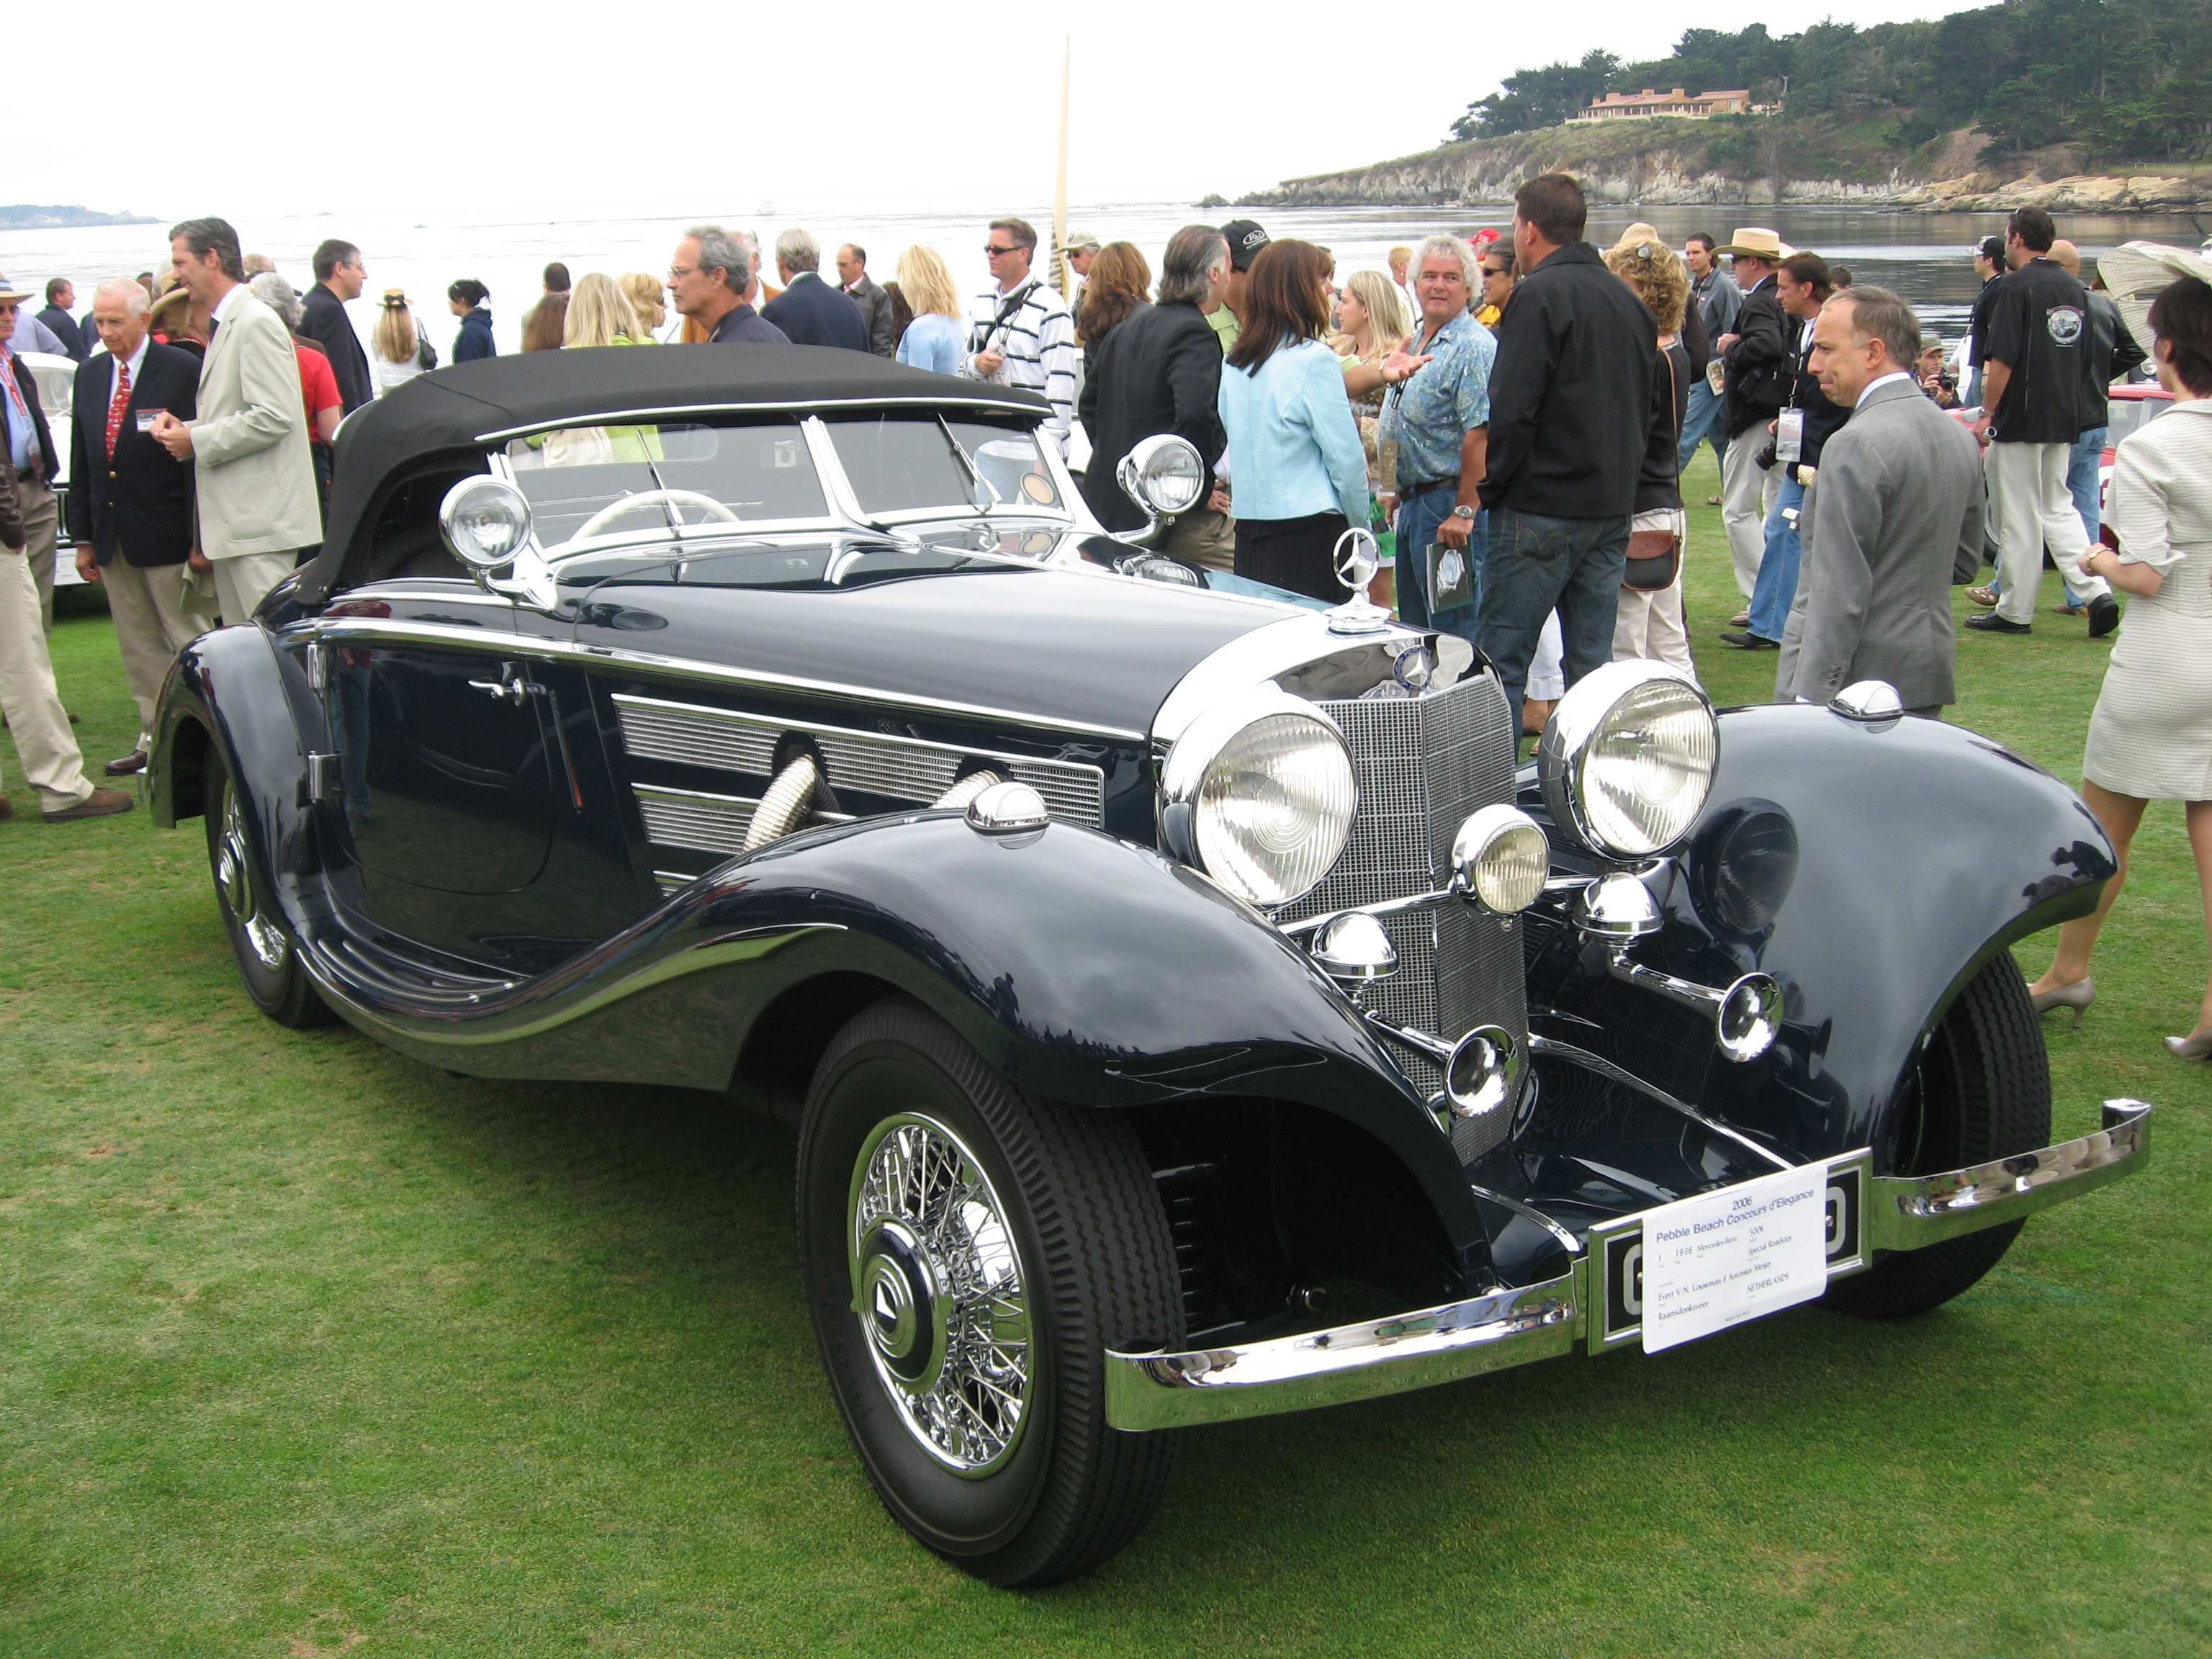 datei:500k spezial-roadster – wikipedia